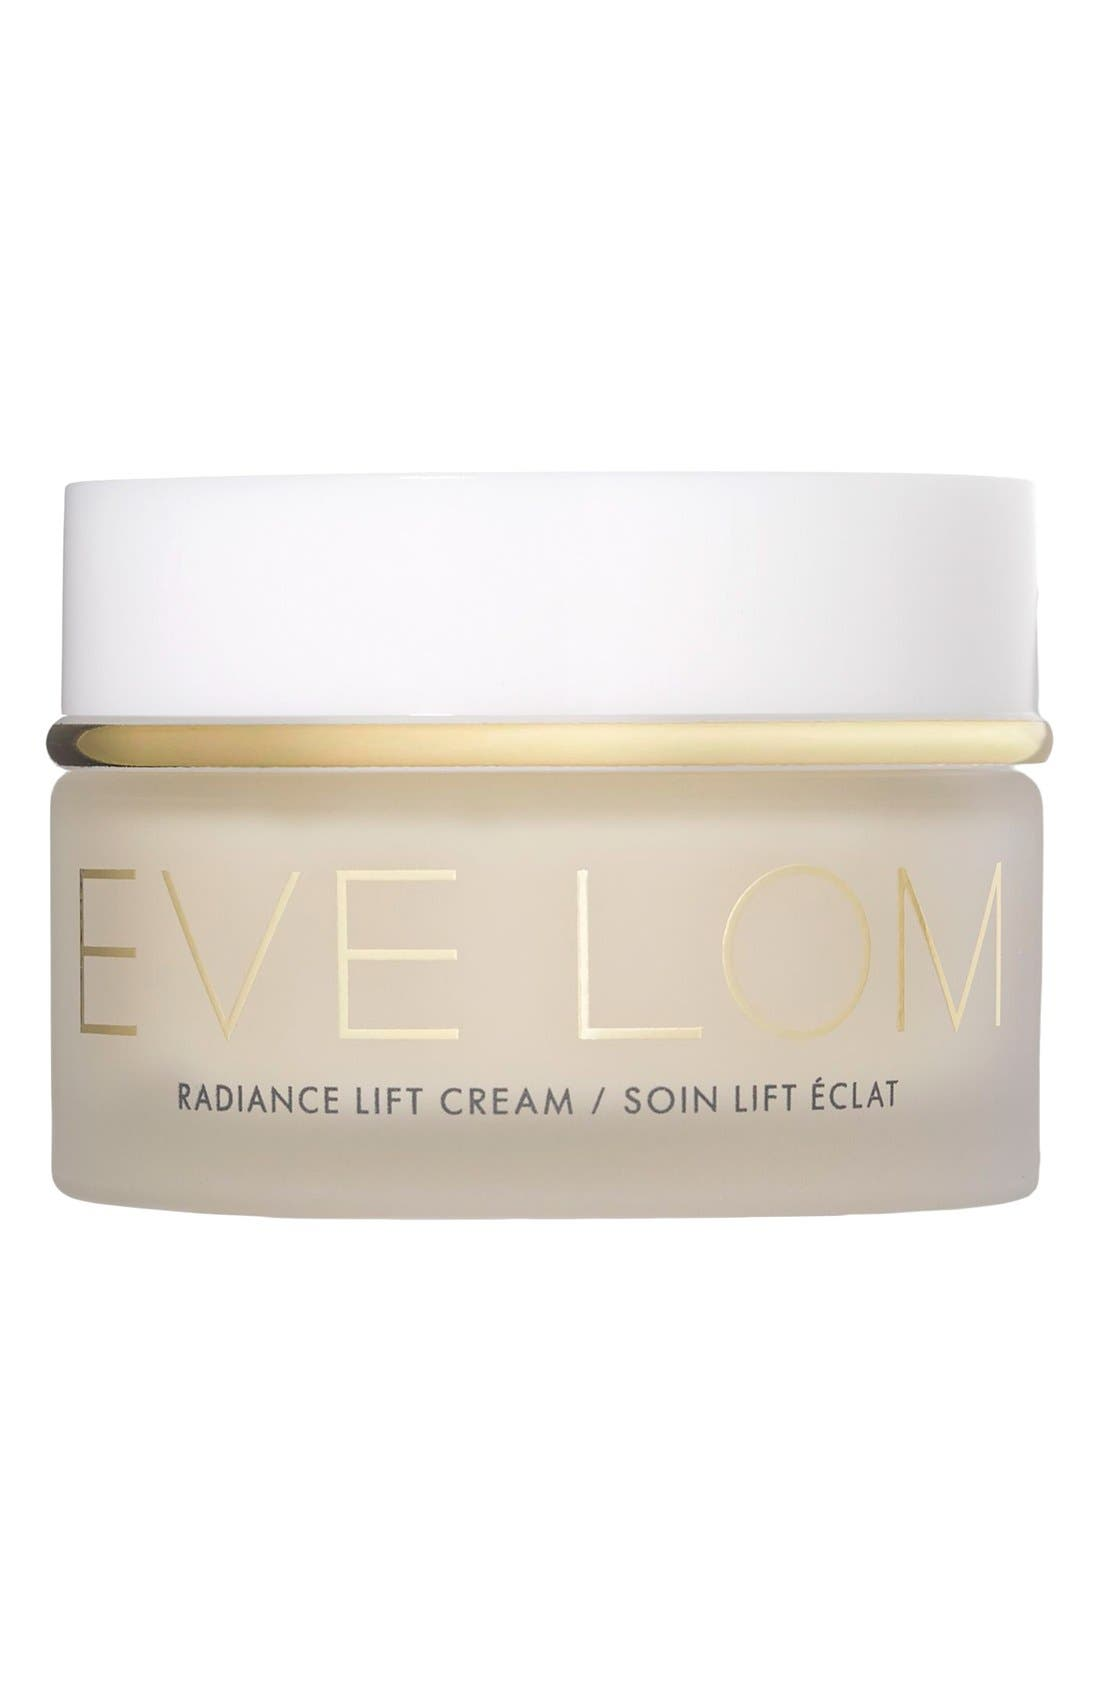 EVE LOM,                             SPACE.NK.apothecary EVE LOM Radiance Lift Cream,                             Alternate thumbnail 6, color,                             000